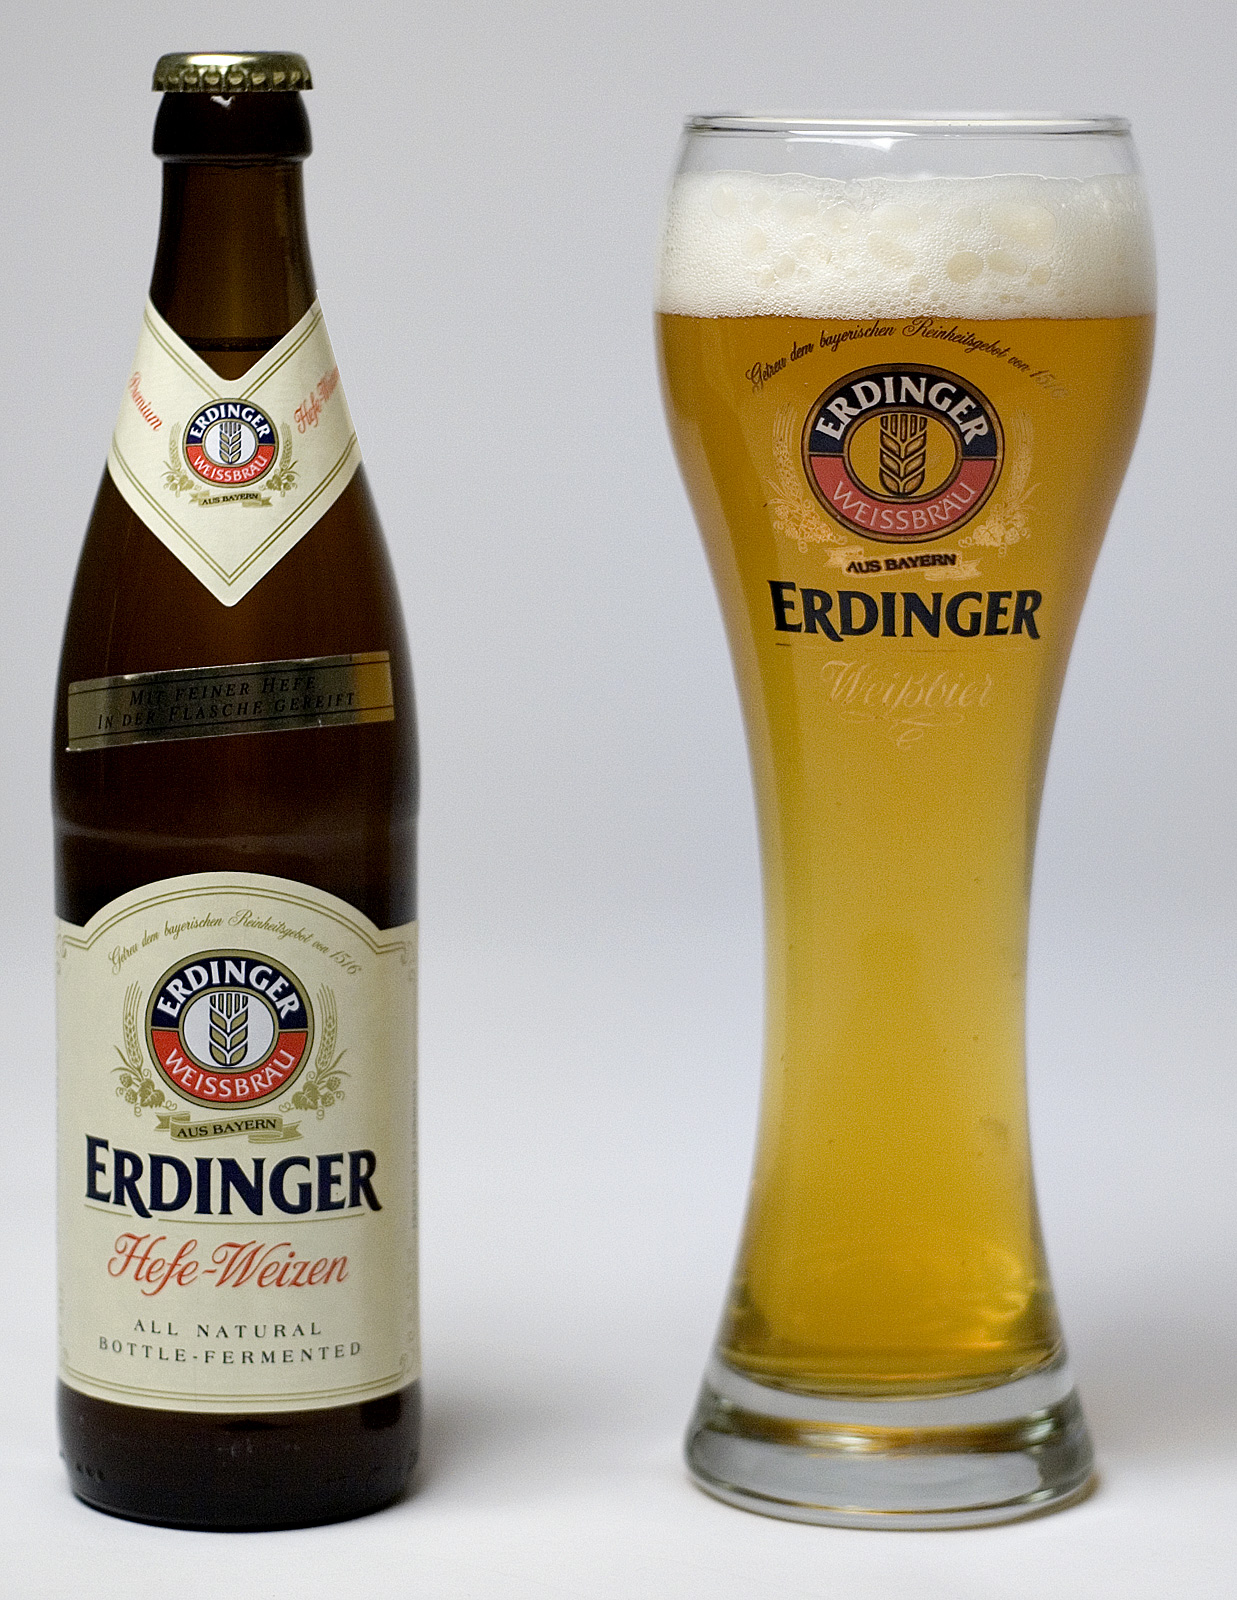 http://upload.wikimedia.org/wikipedia/commons/e/eb/Erdinger-bottle-glass_RMO.jpg